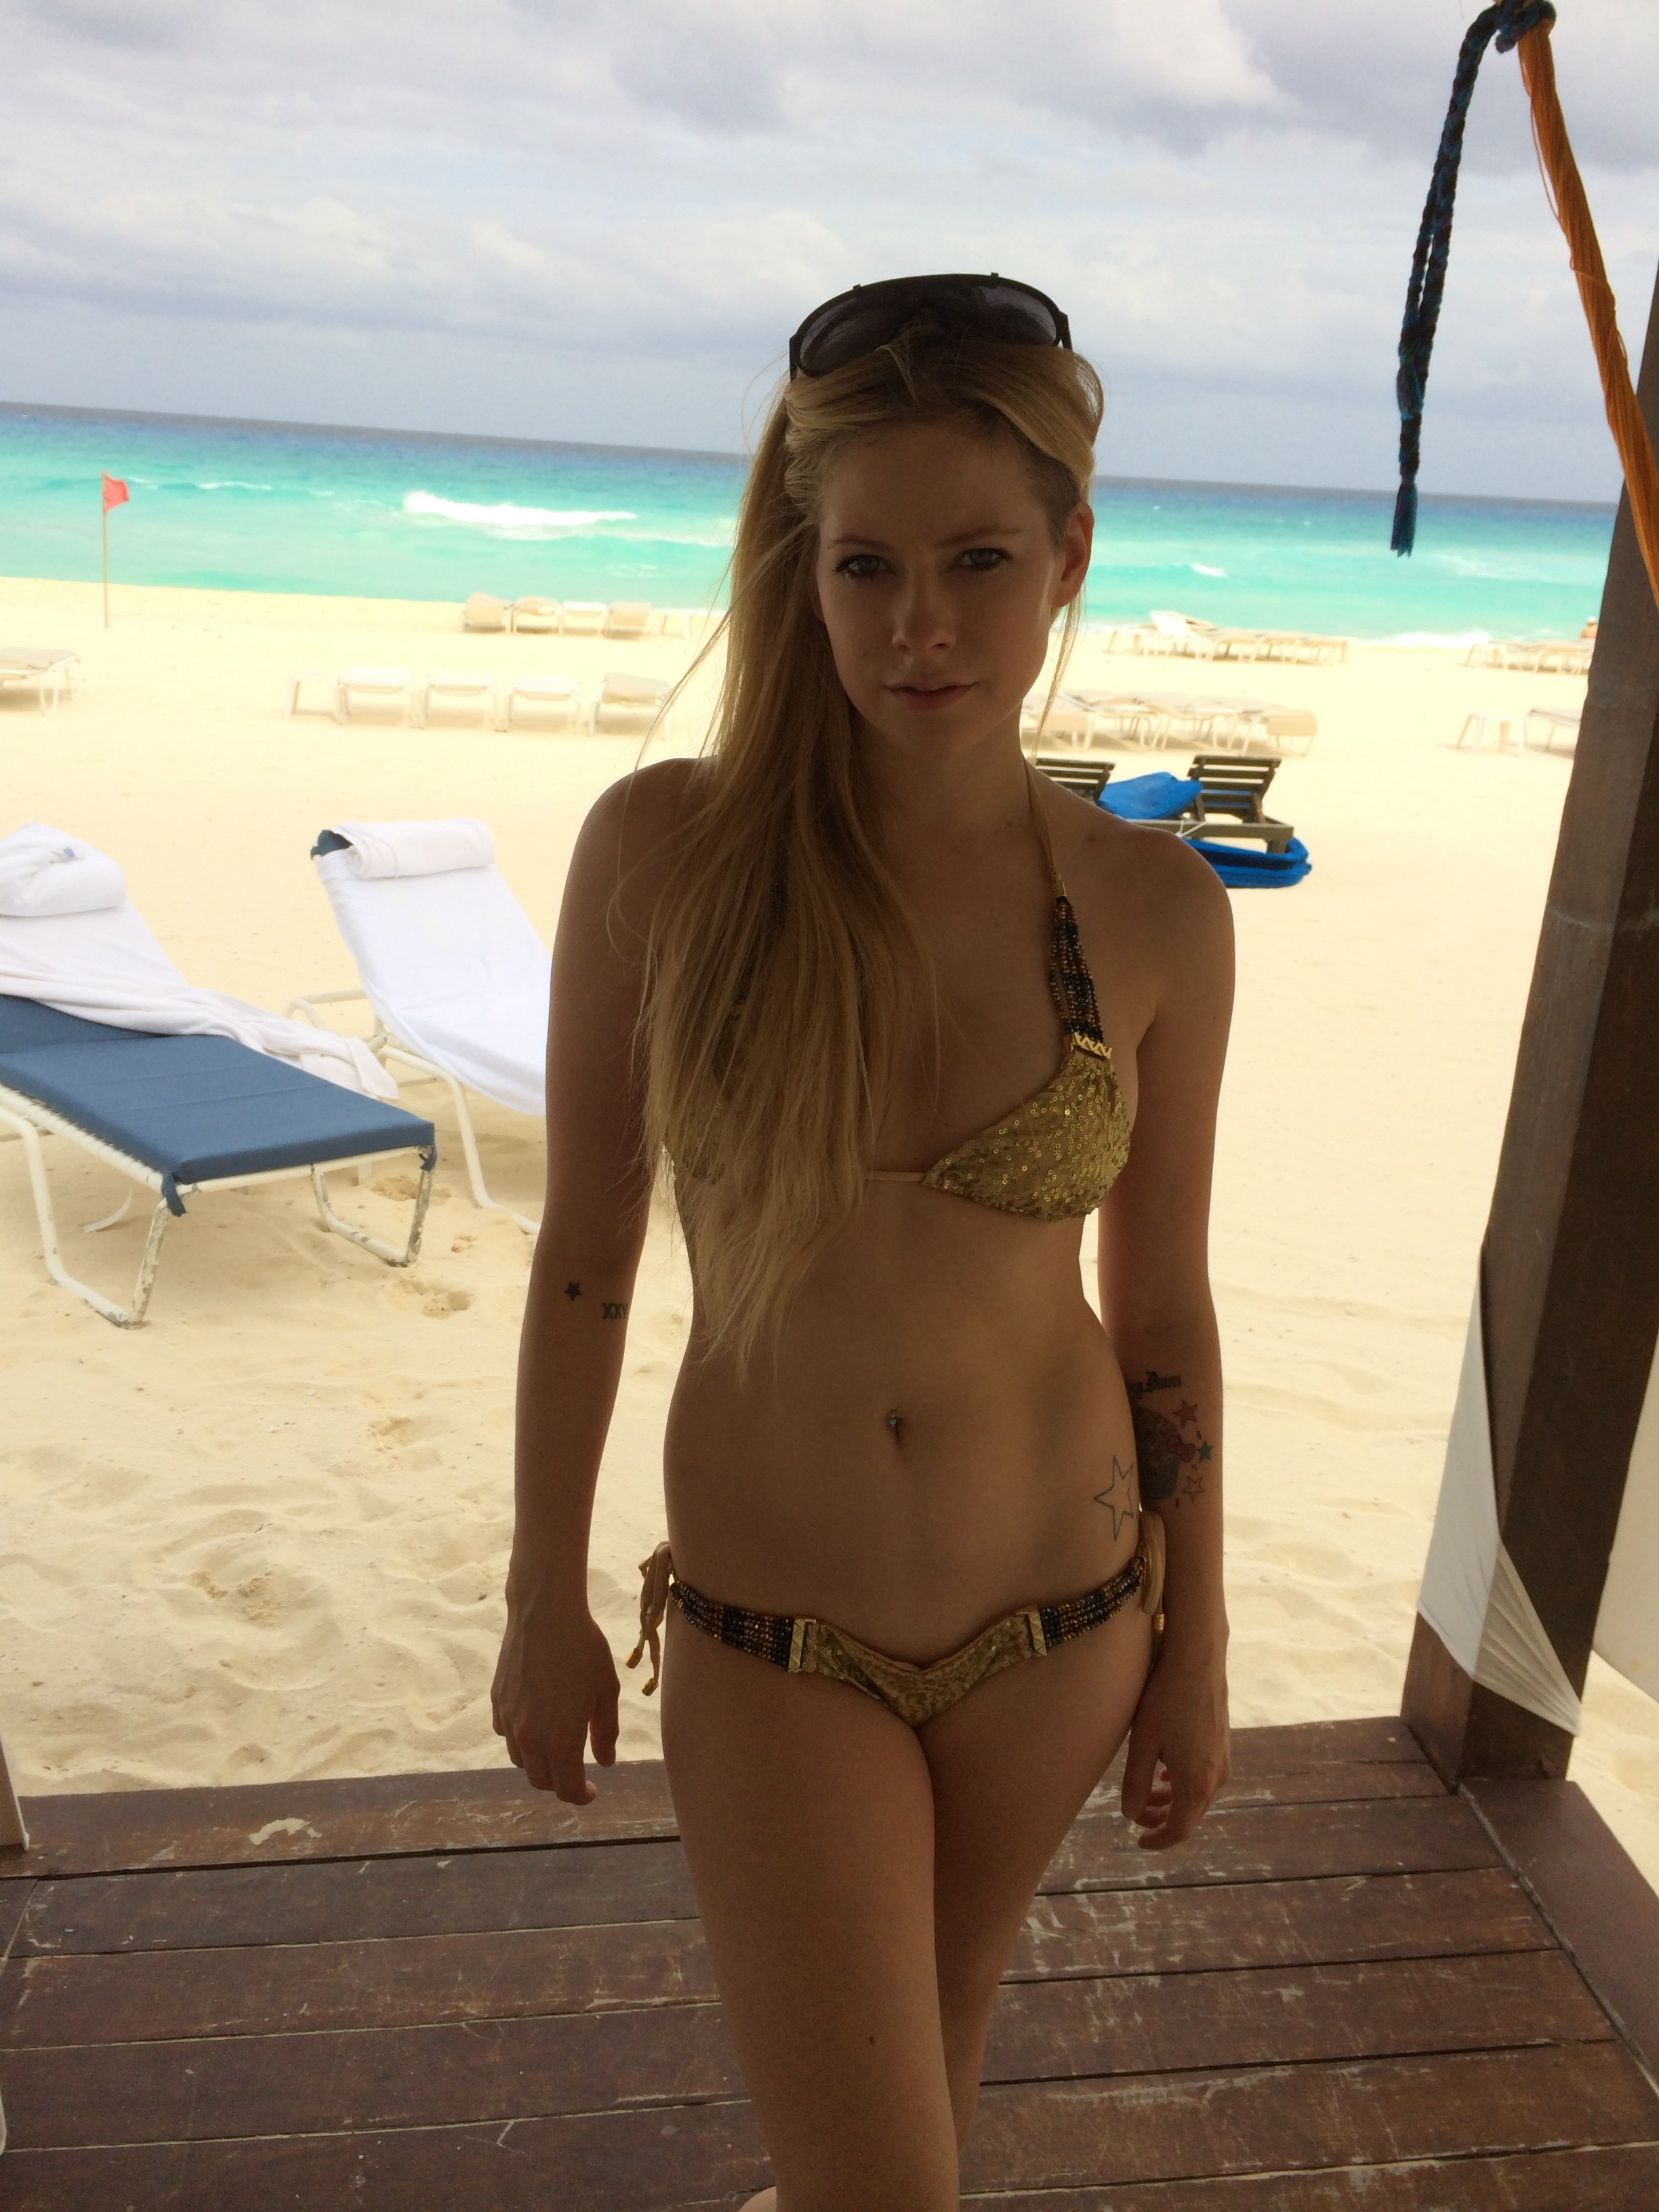 Avril Lavigne boobs show